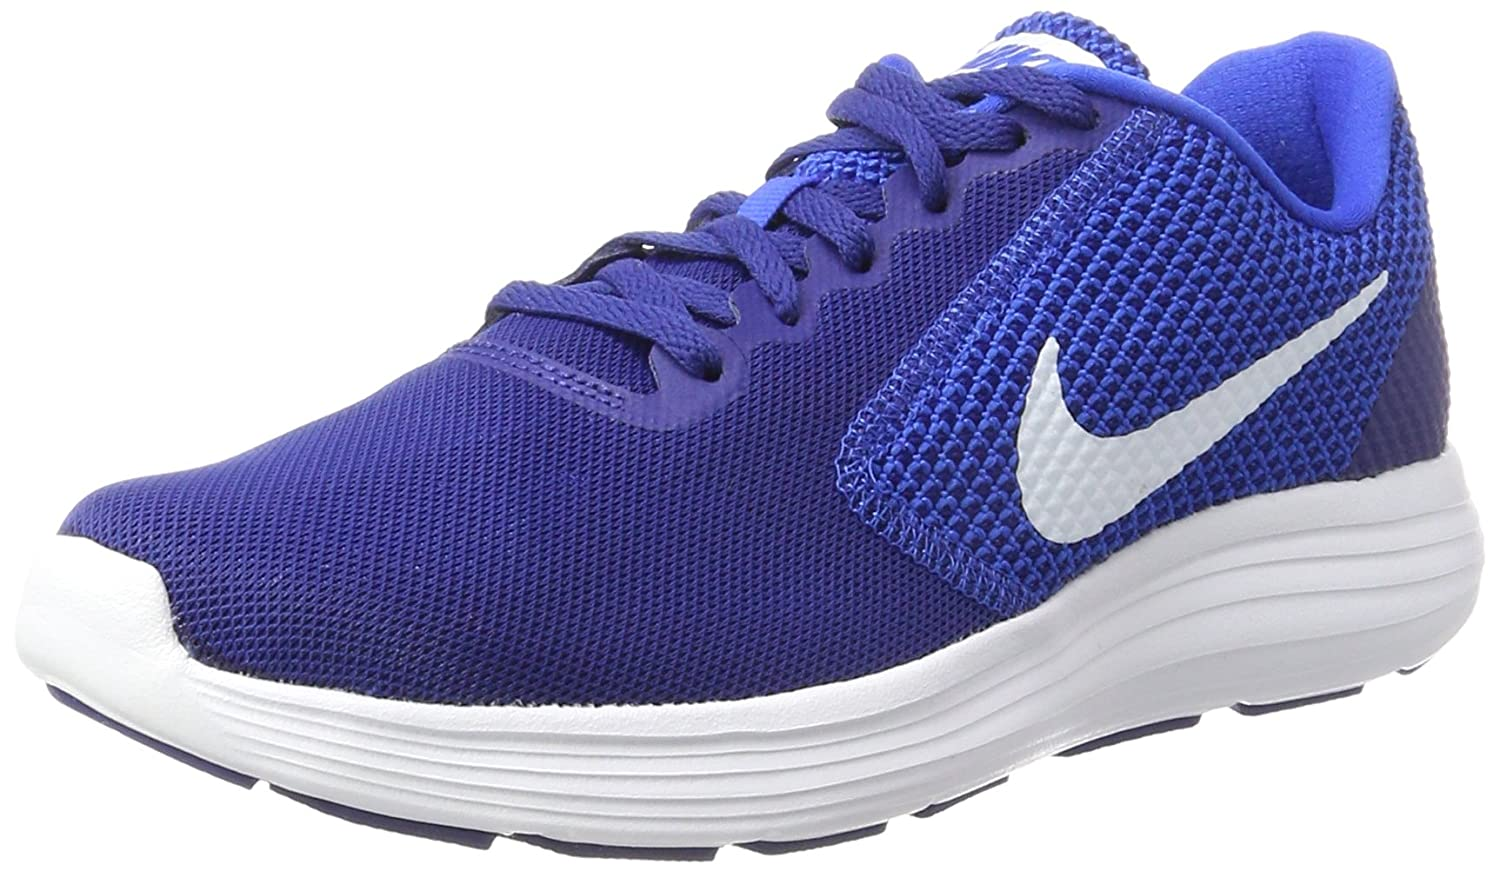 NIKE Mens Revolution Running Shoe Image 1